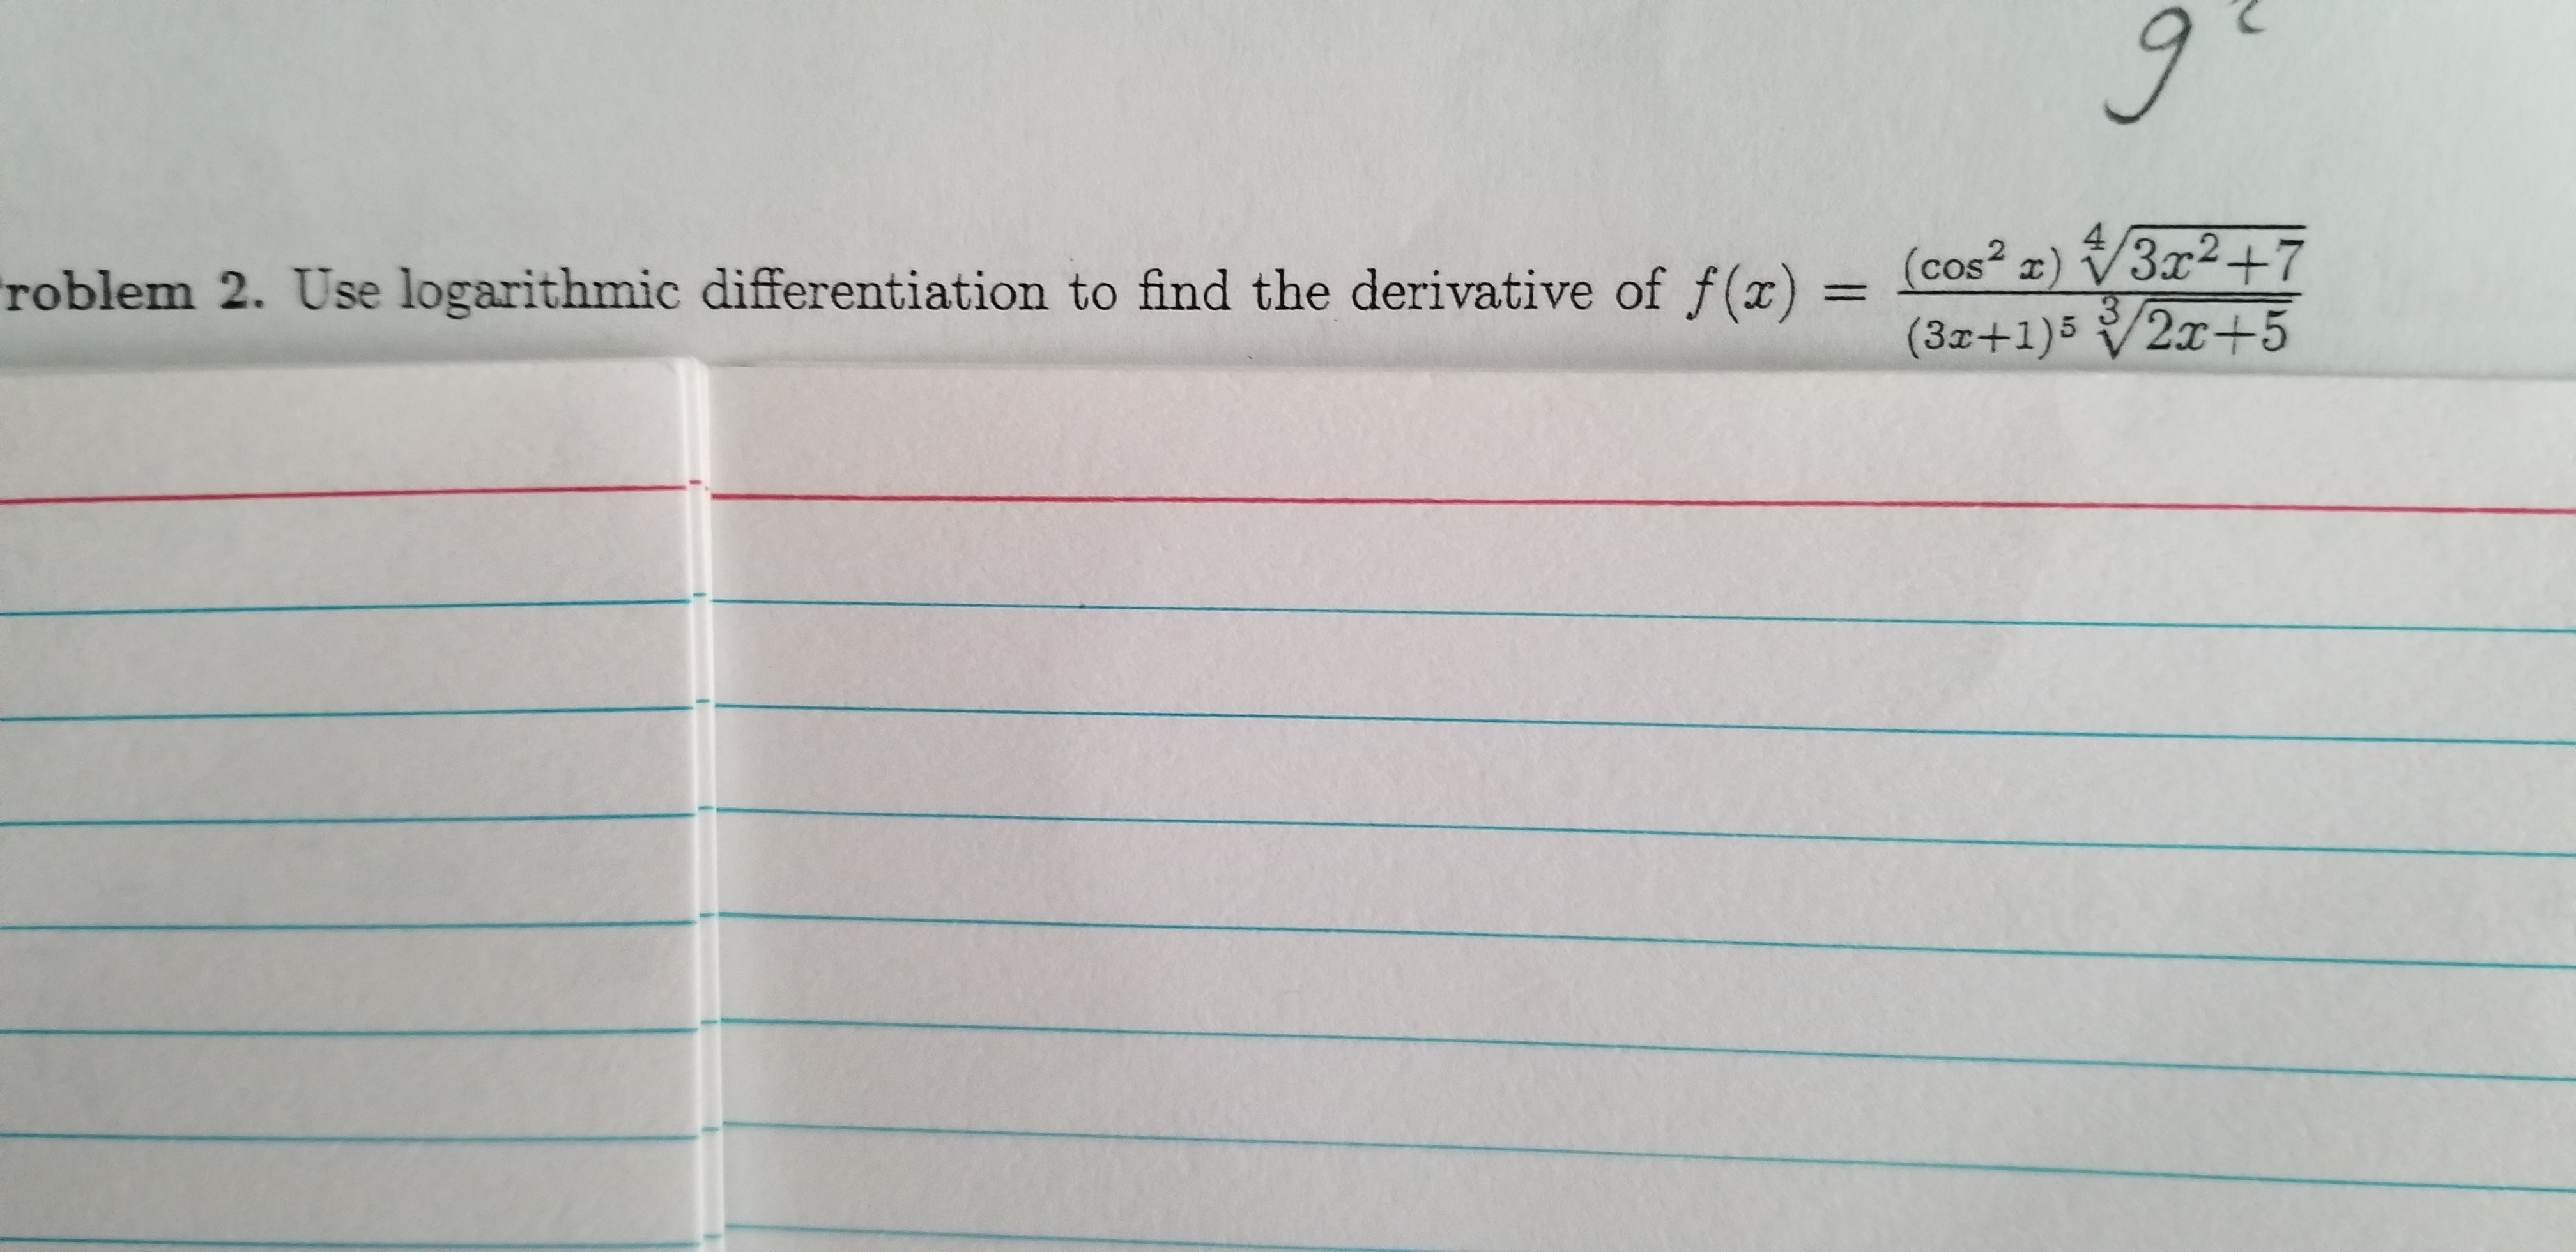 (cos² z) /3x²+7 3. (3x+1)5/2x+5 3x2+7 roblem 2. Use logarithmic differentiation to find the derivative of f()